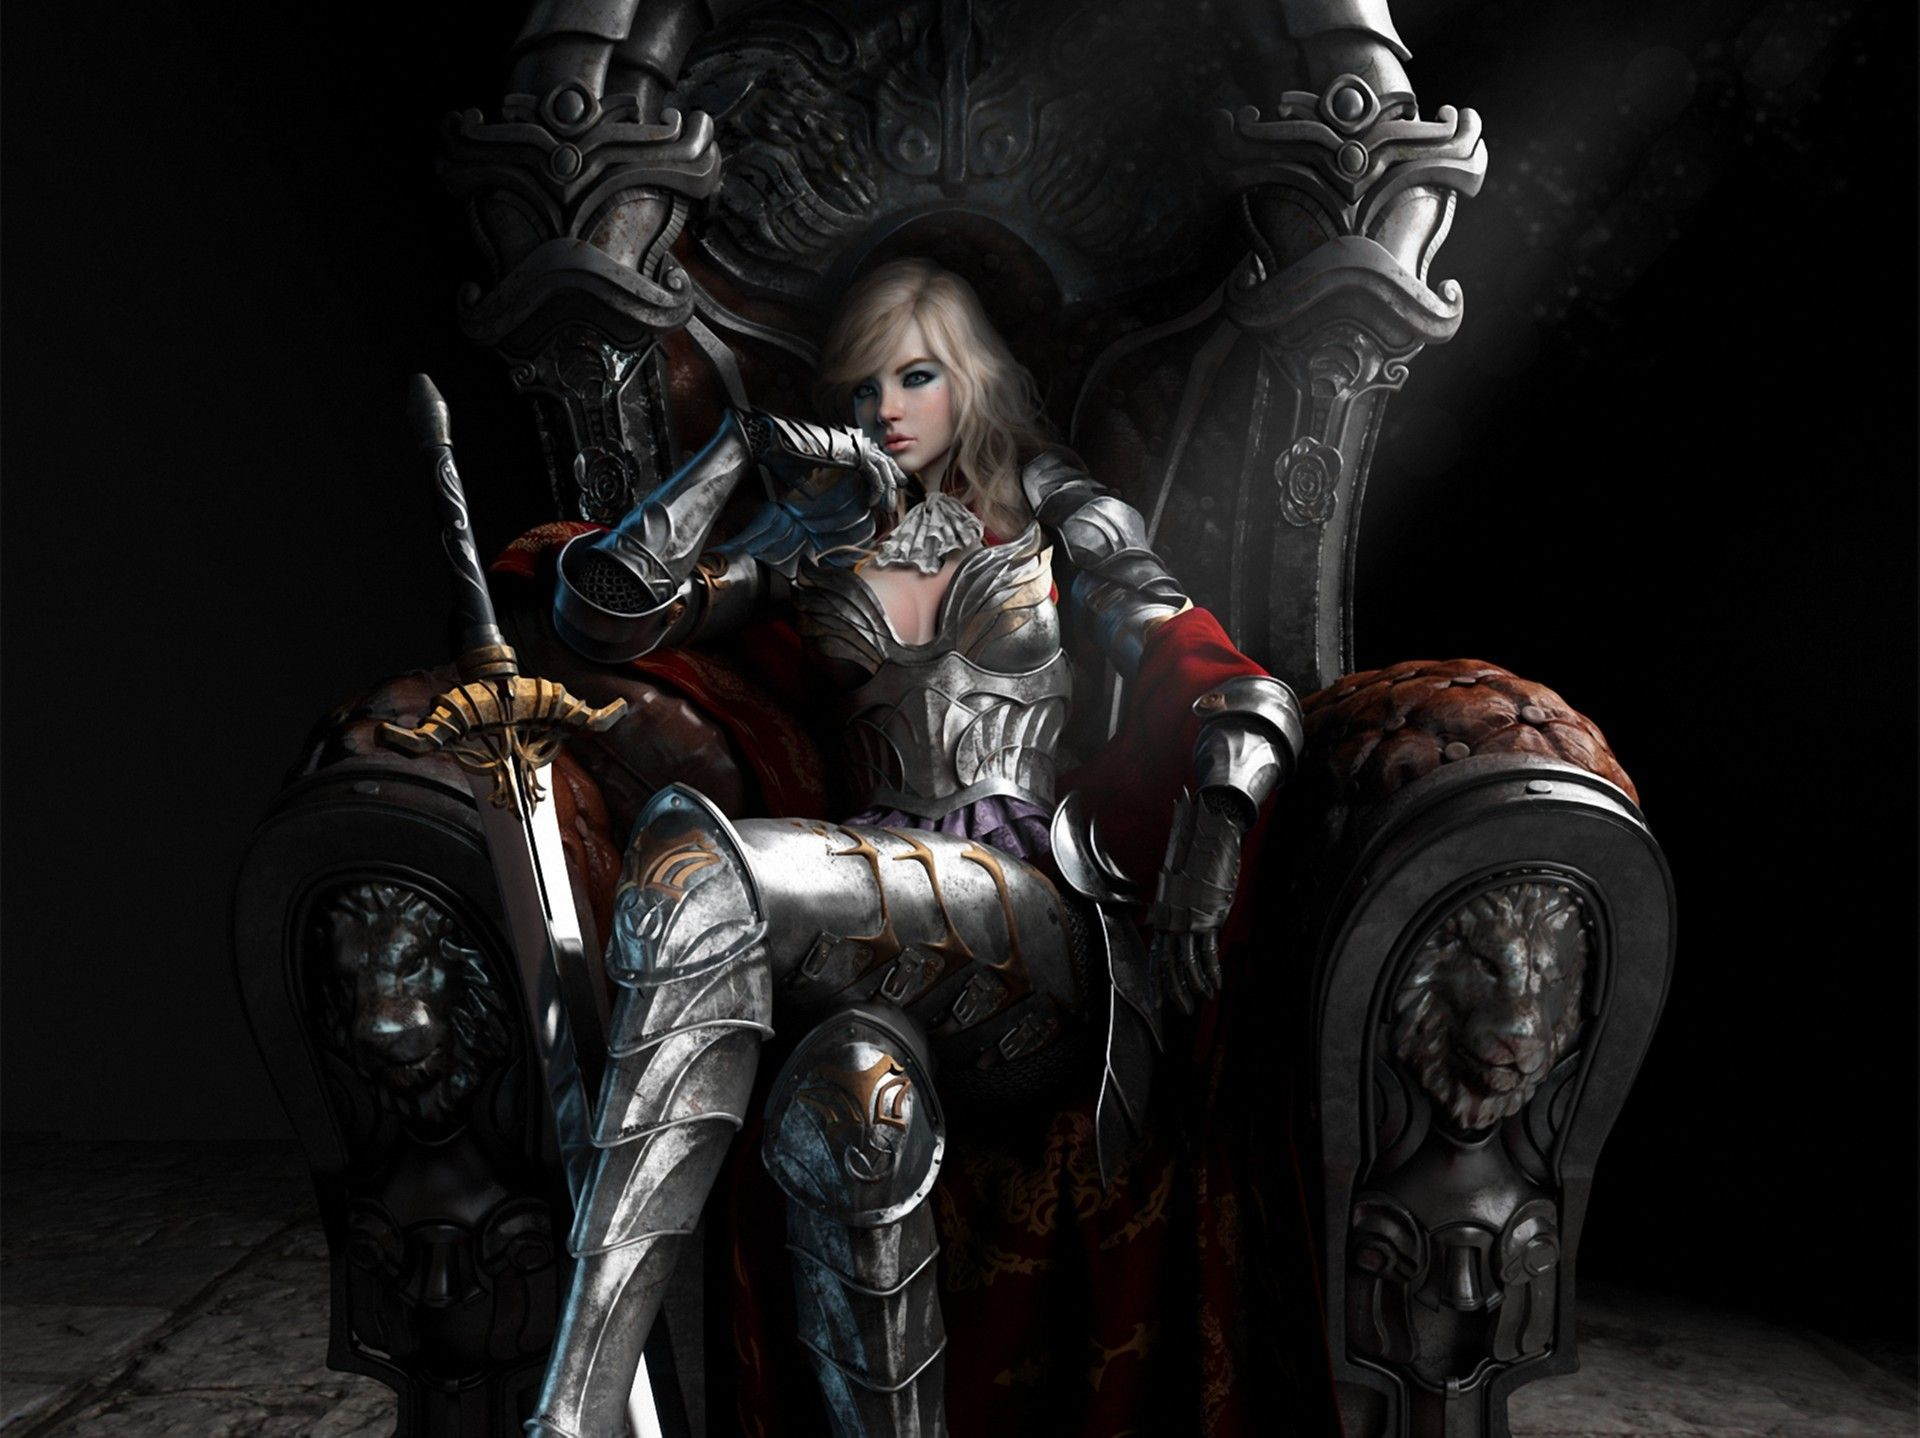 fantasy queen art collection great pictures, pure High